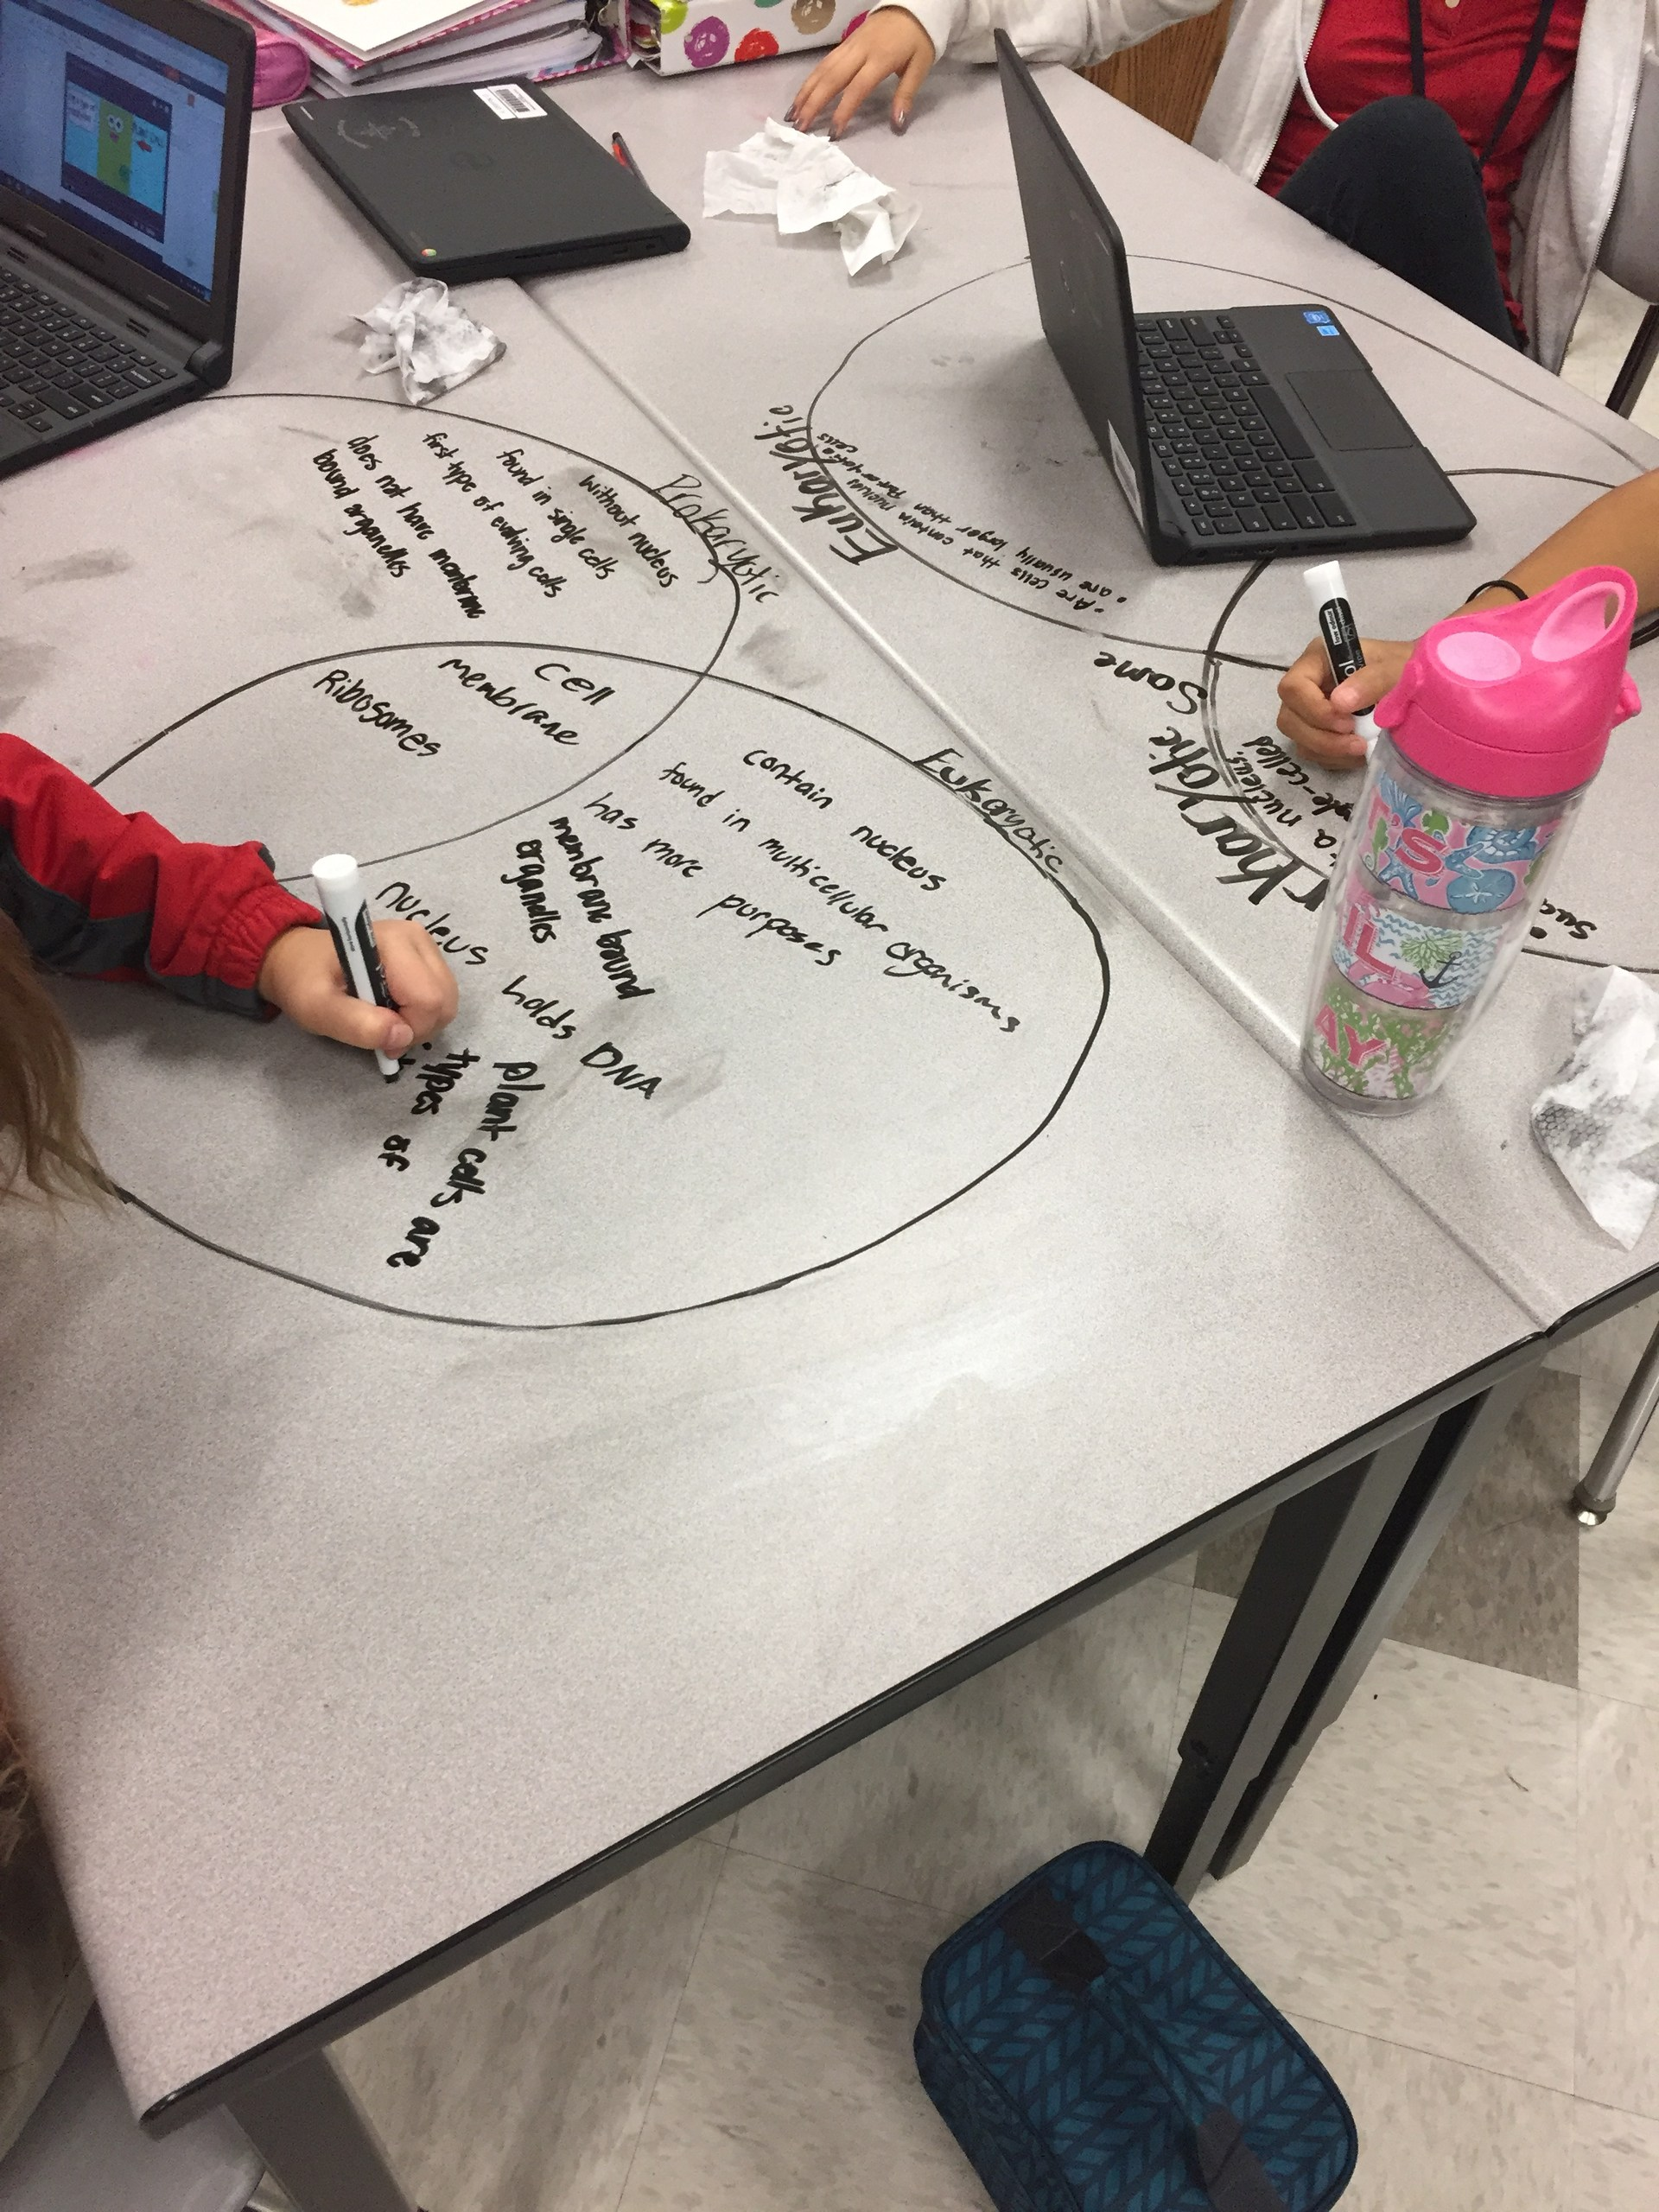 Comparing Prokaryotic and Eukaryotic Cells by drawing Venn diagrams on the lab tables